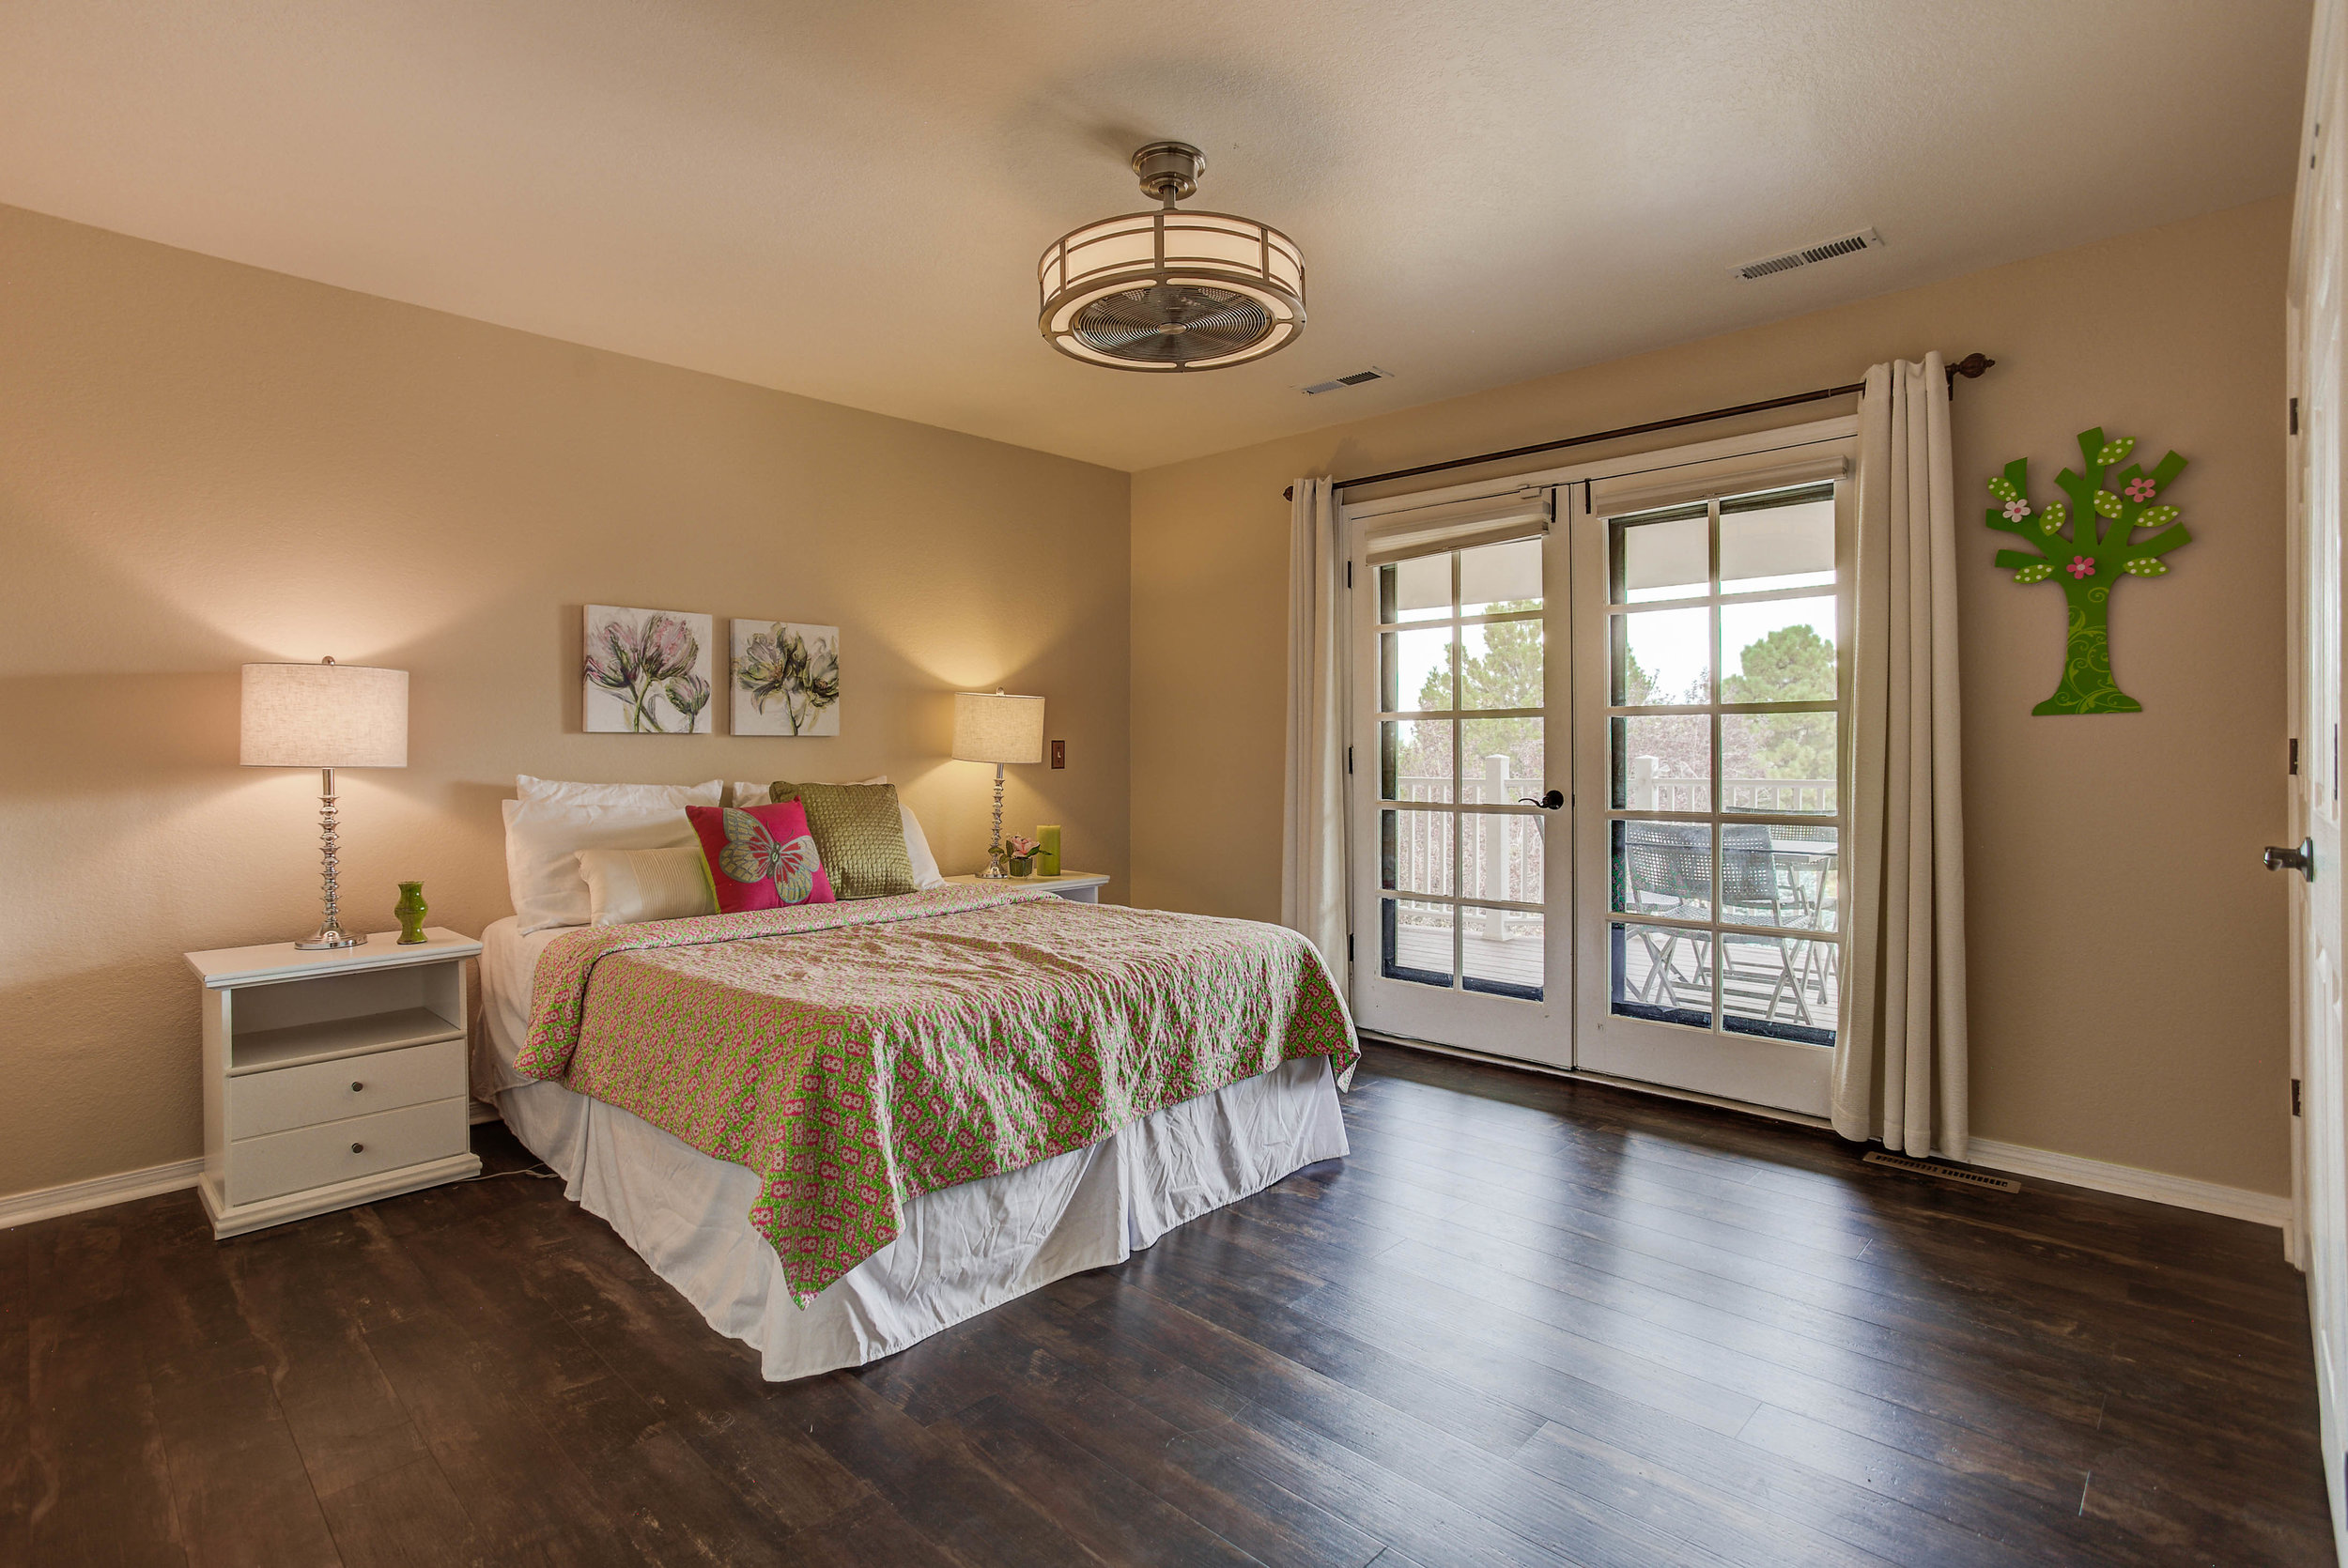 7596 South Telluride Court_Bedroom2a.jpg